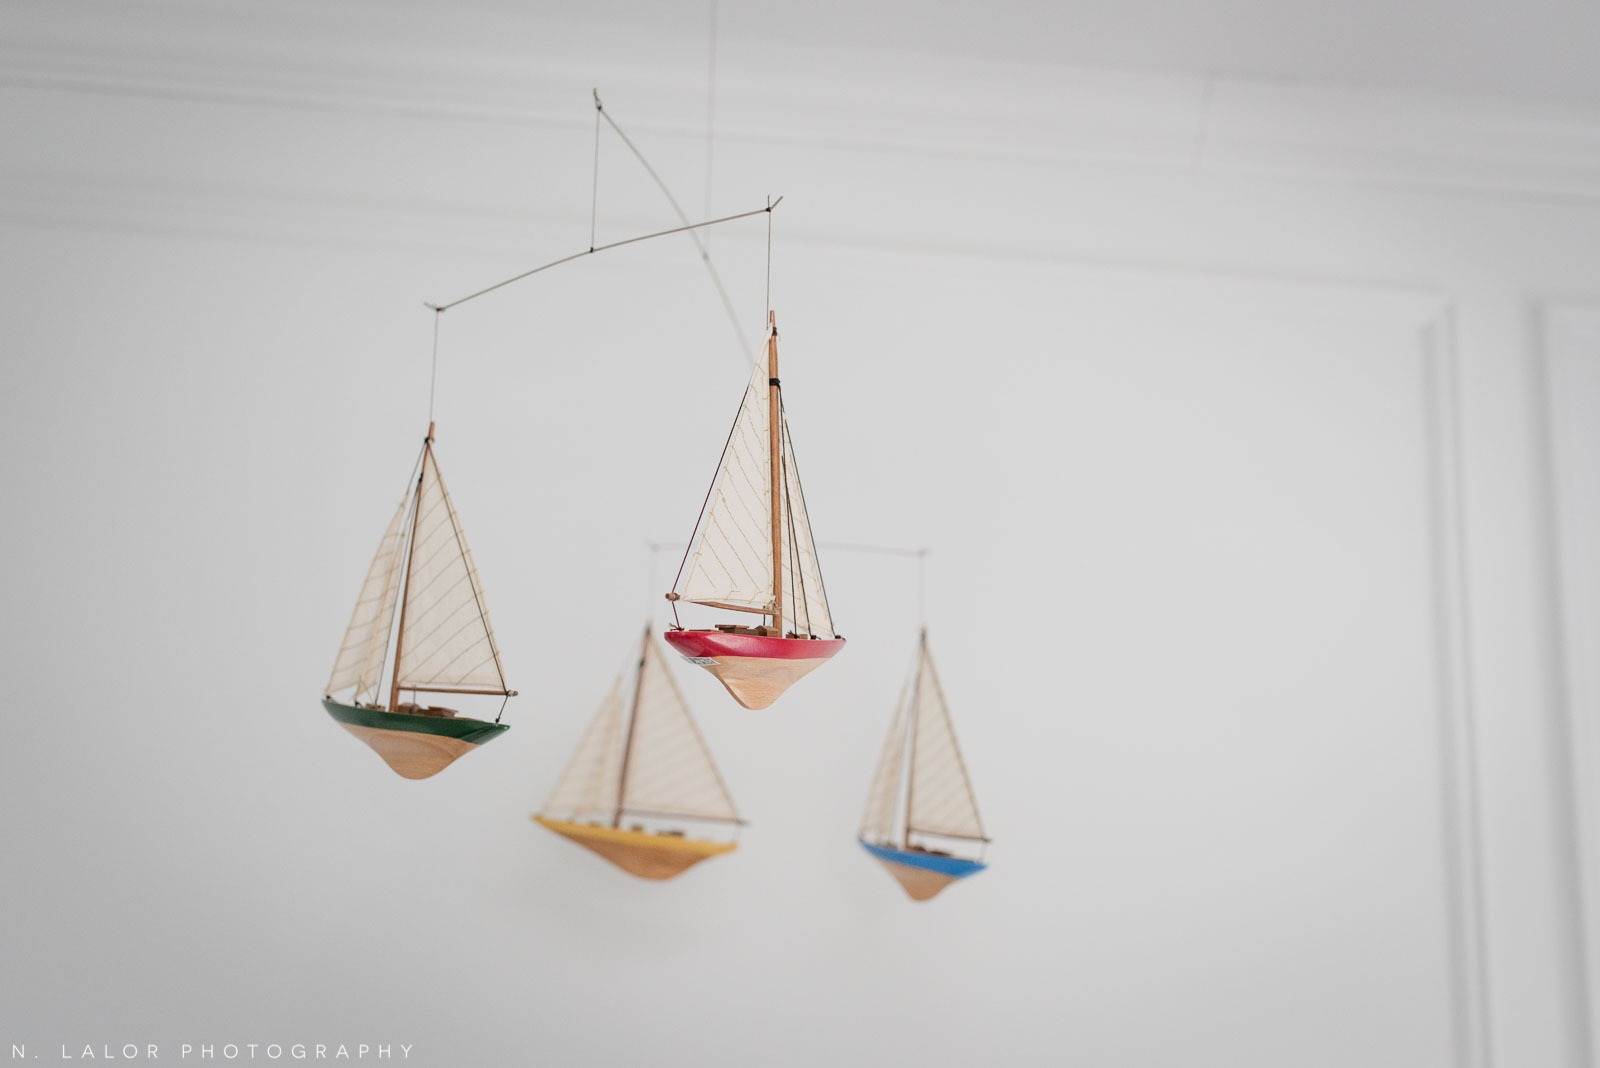 Boat mobile in baby boy's room. Photo by N. Lalor Photography.